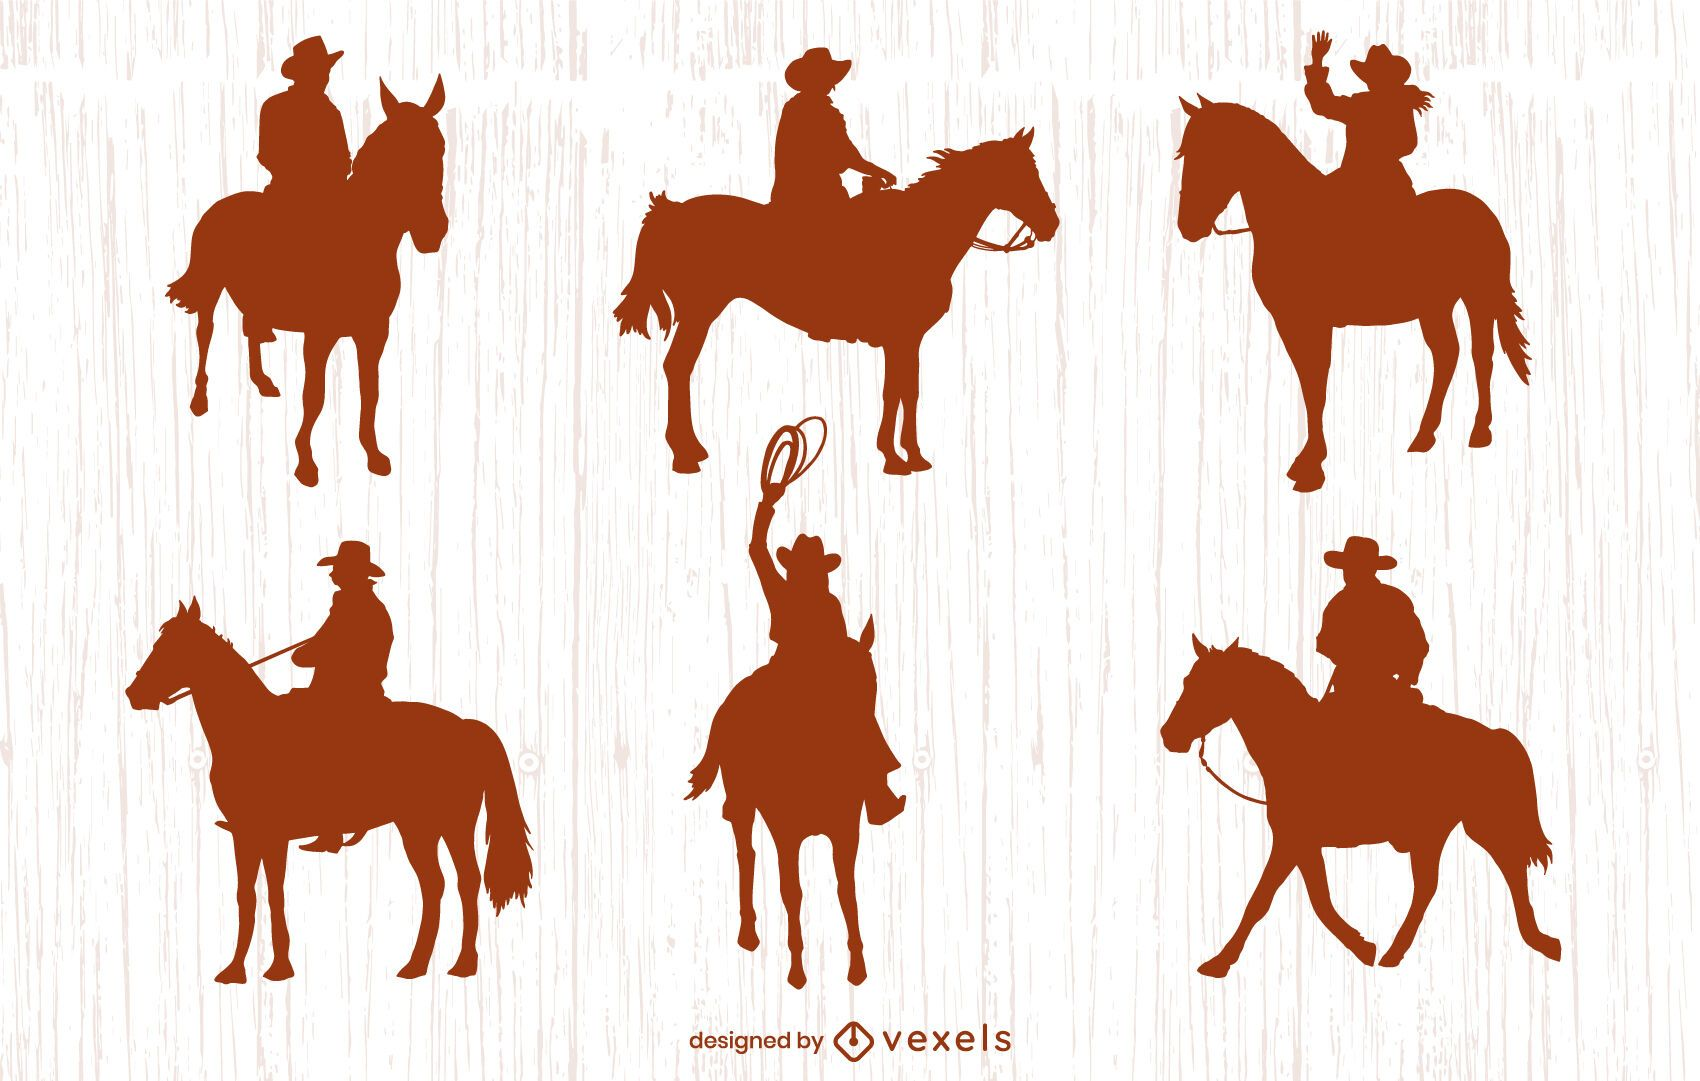 Standing cowboys silhouettes set